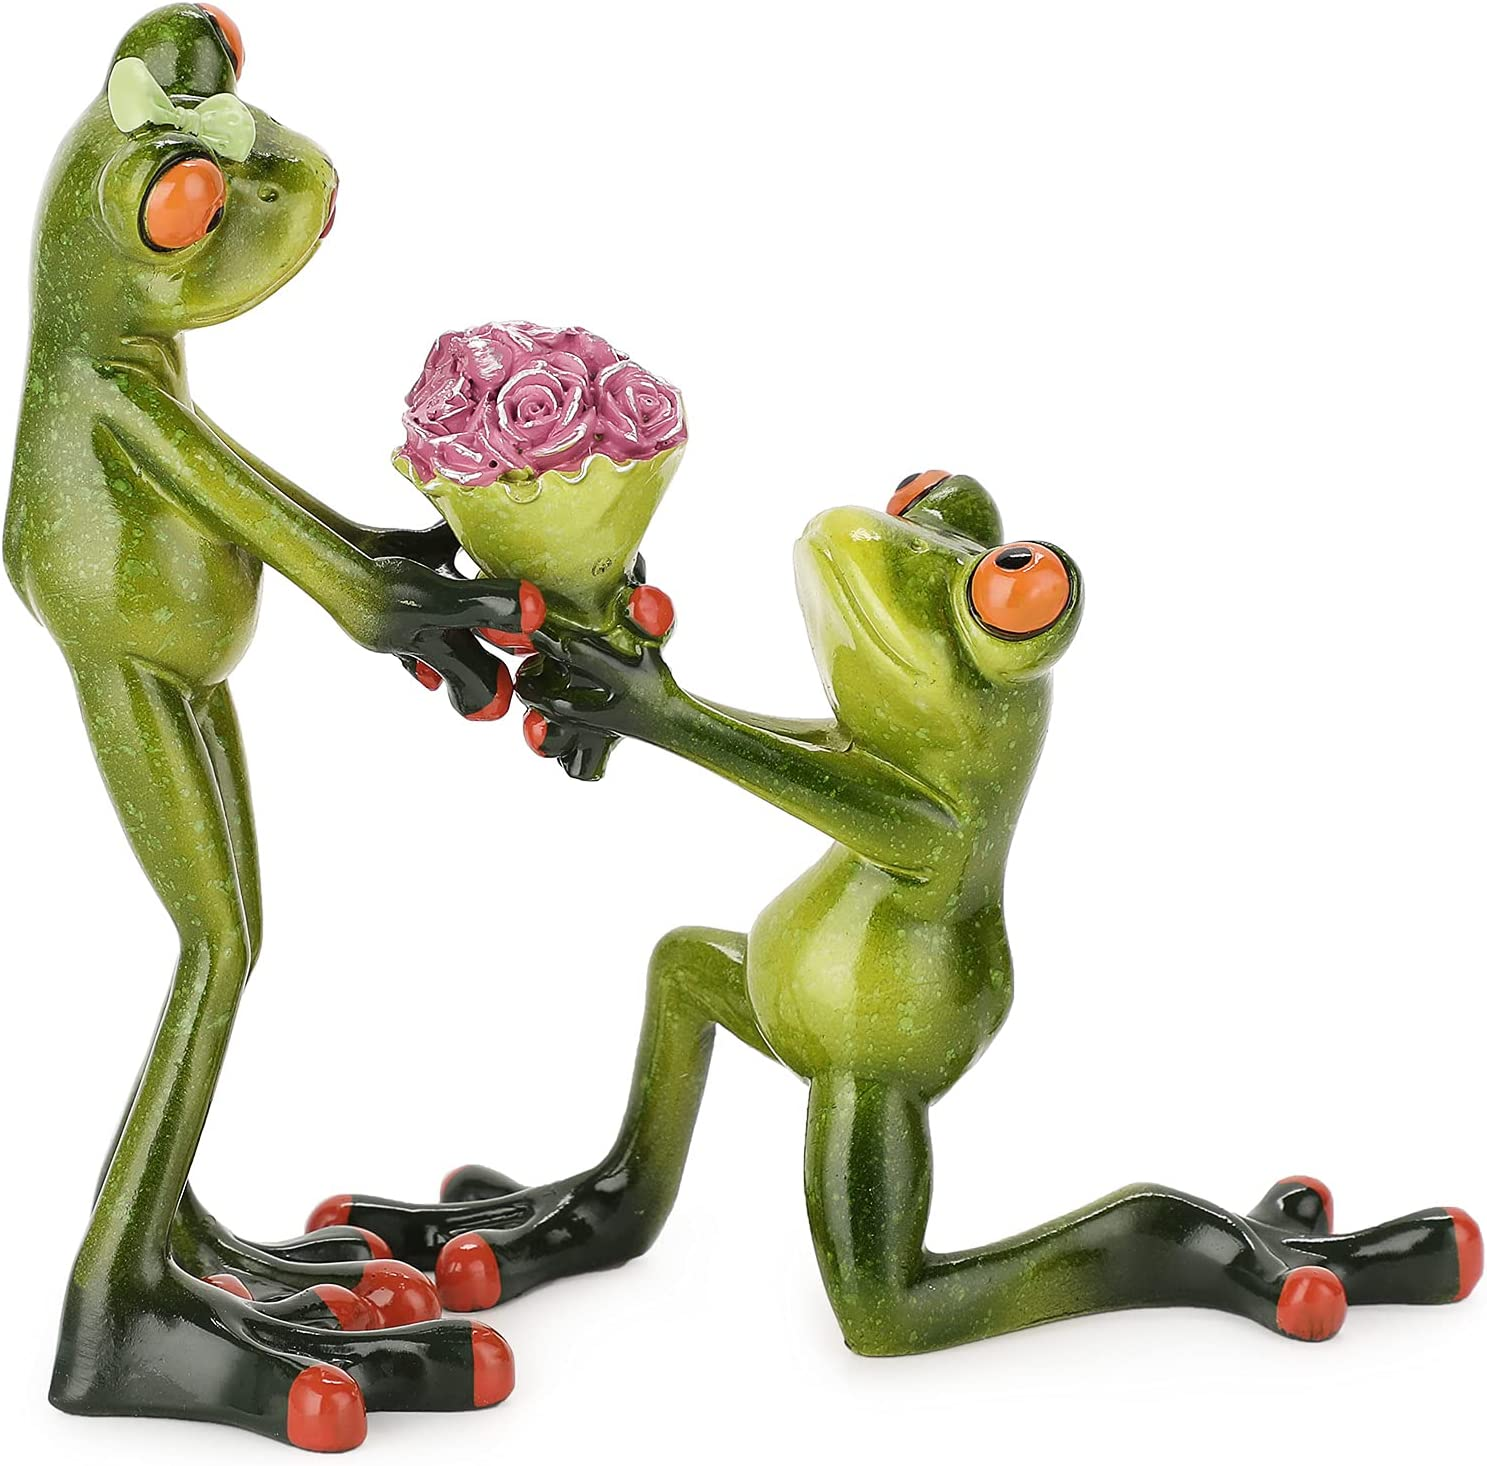 JuxYes Creative Craft Resin Frog Figurine Decor, Marry Me Lover Frog Valentine Frog Sculpture Statue, Personalized Animal Collectible Figurines Mascot Frog Resin Crafts for Shelves Table Desk Decor